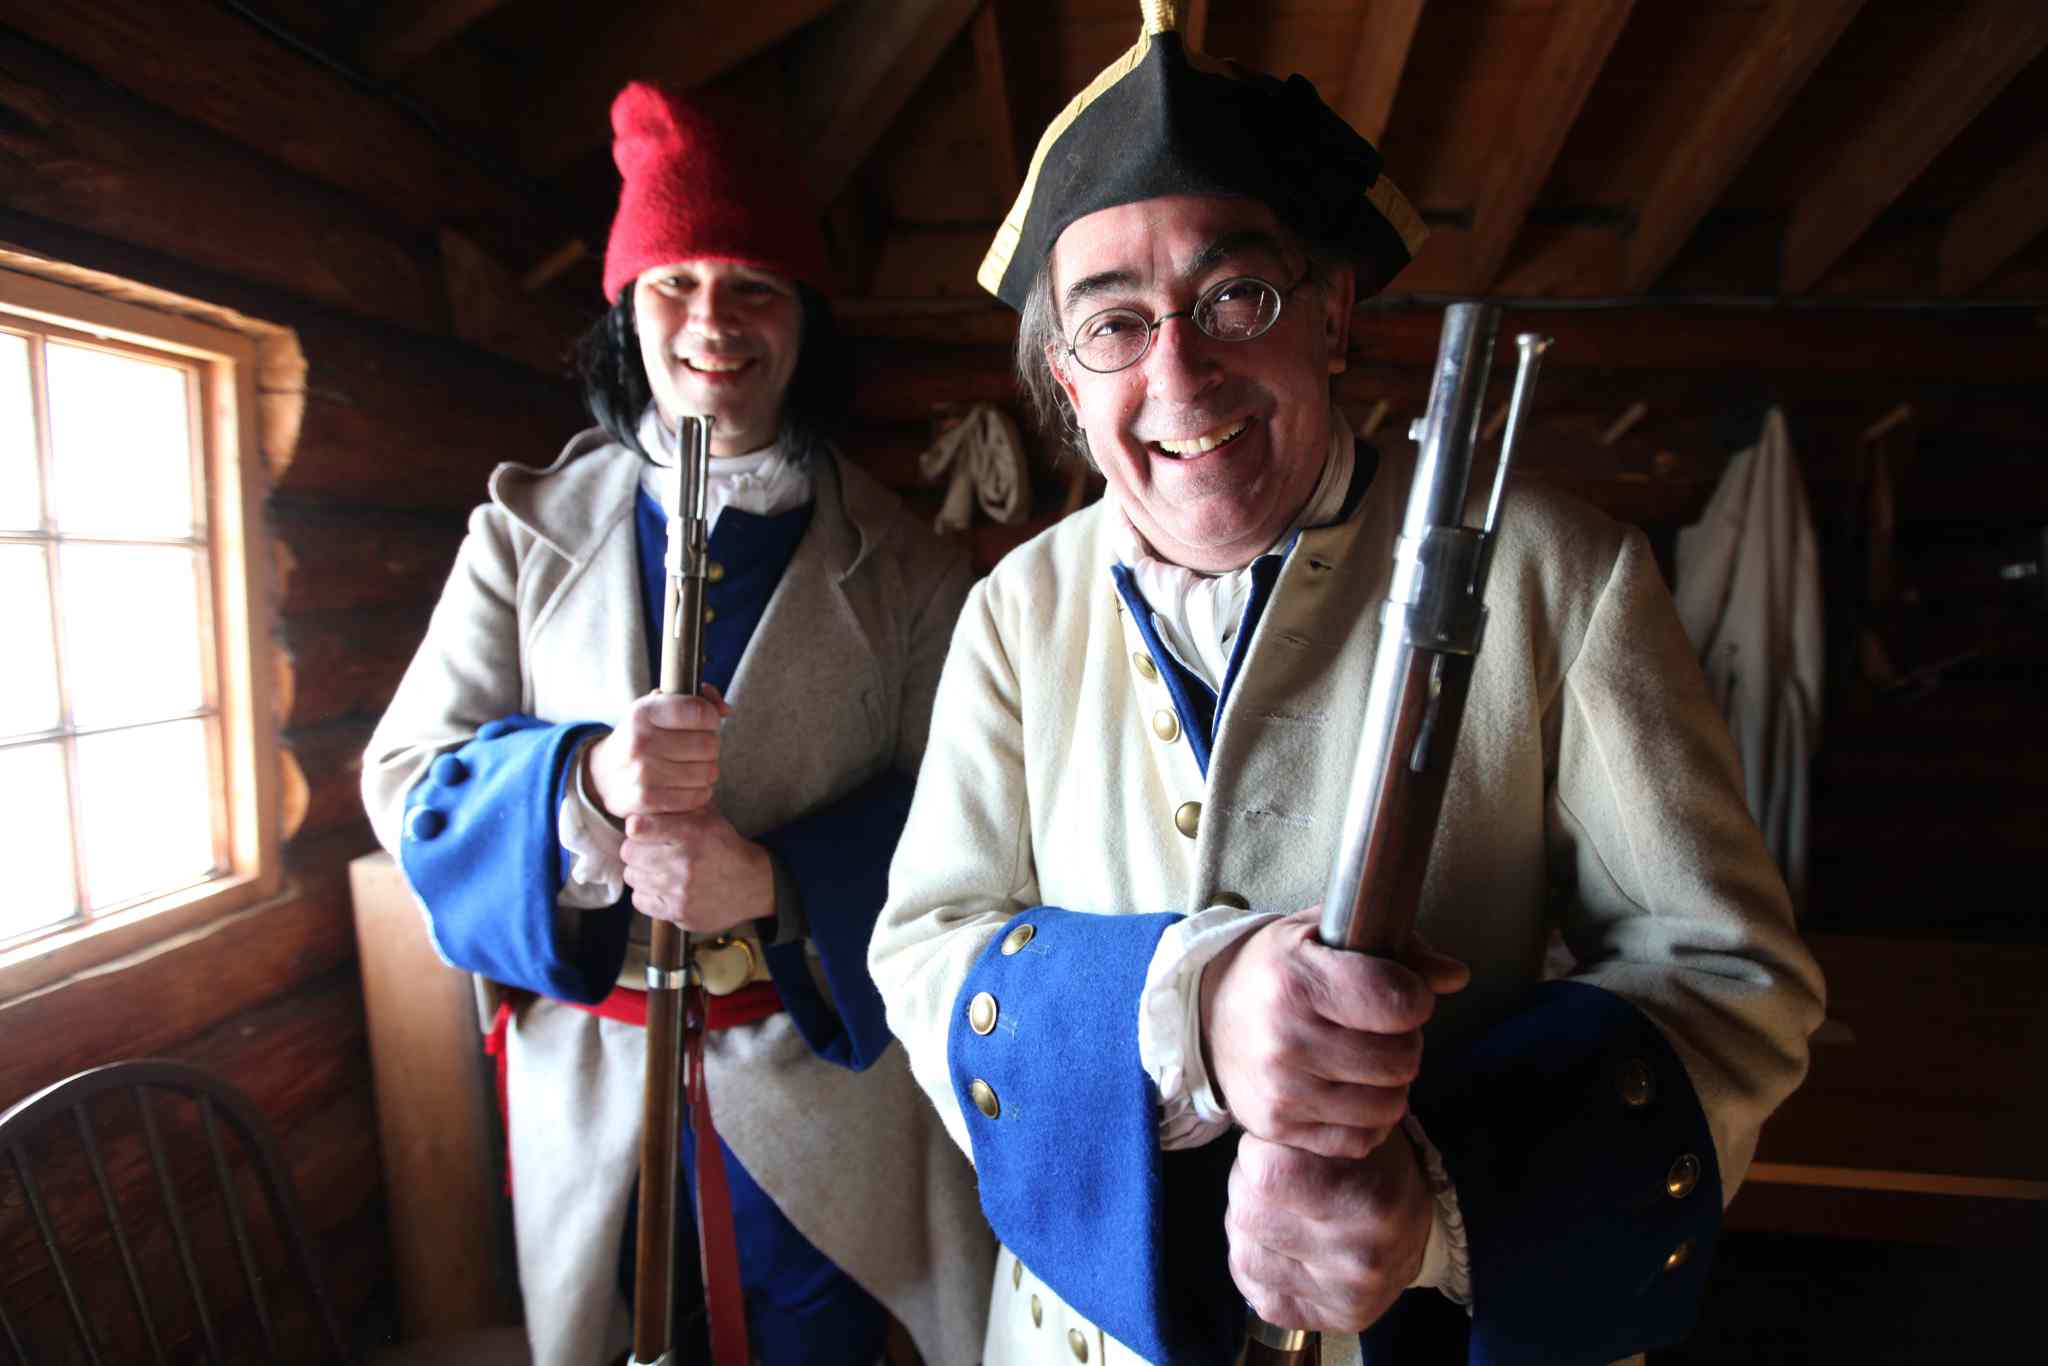 Historical re-enactors Marc Charbonneau (black hat) and William Caithness enjoy volunteering at the Festival du Voyageur Saturday.